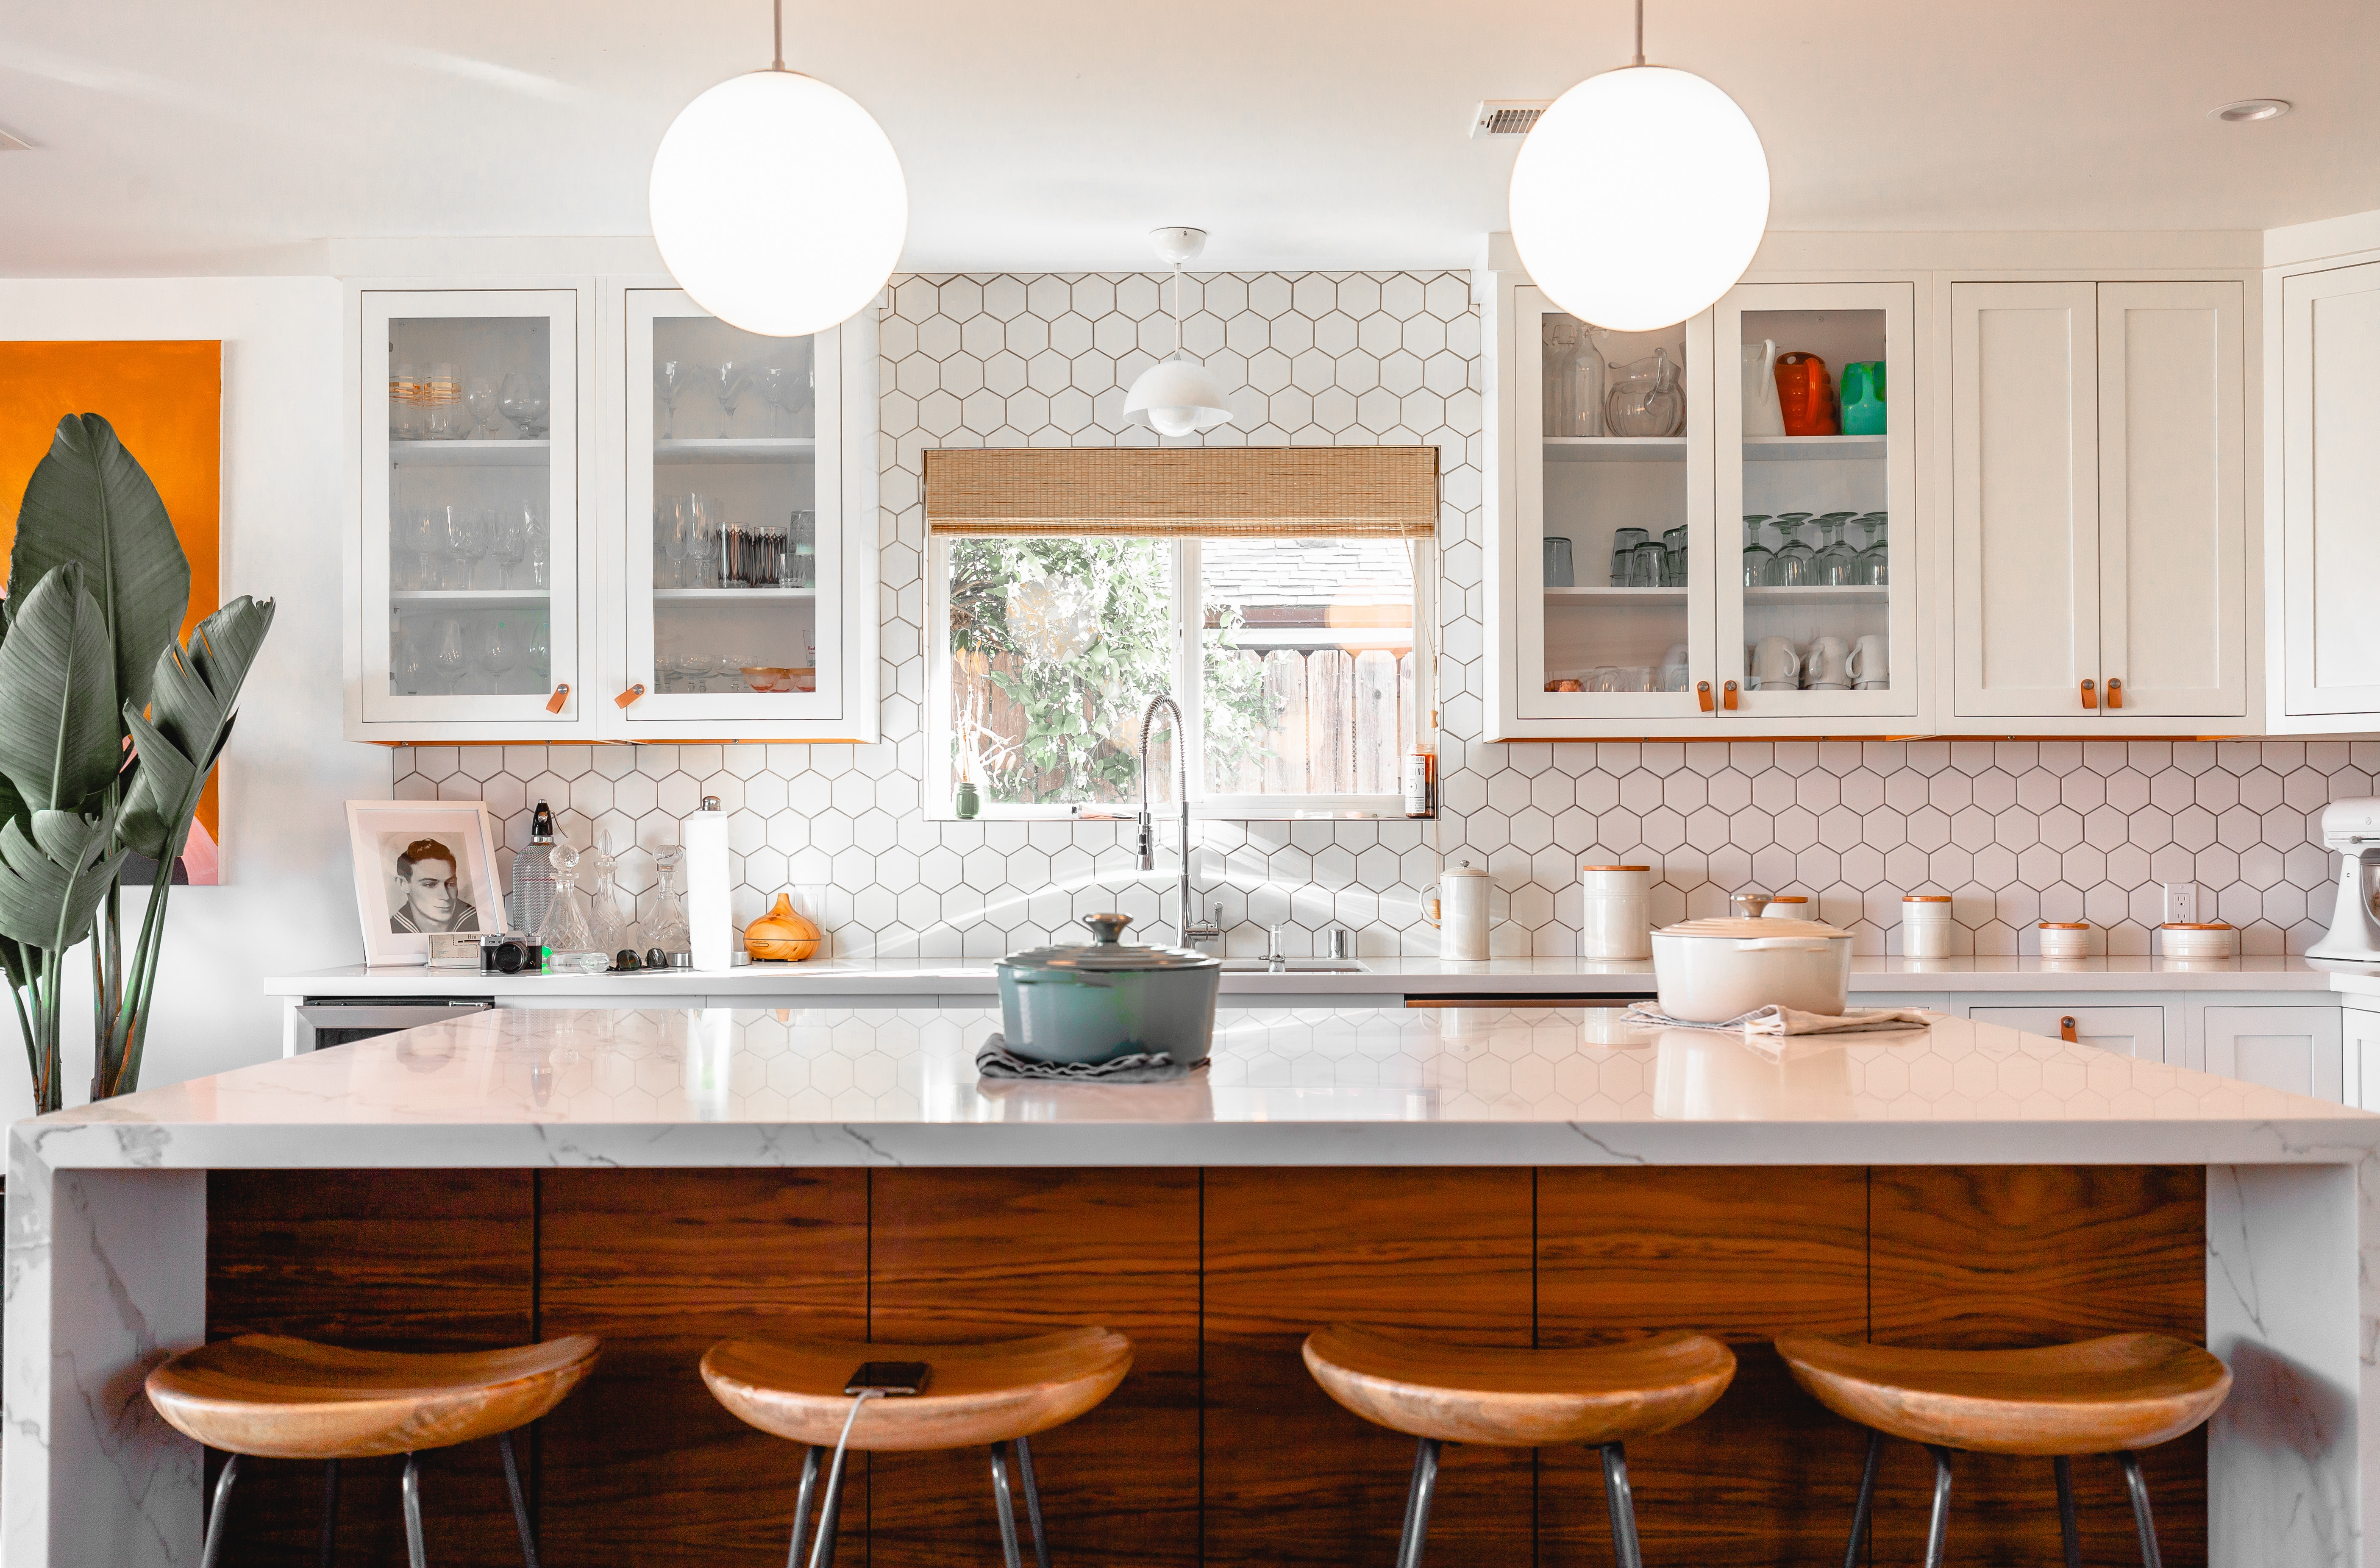 3 Must Ask Questions for Your Kitchen Renovation